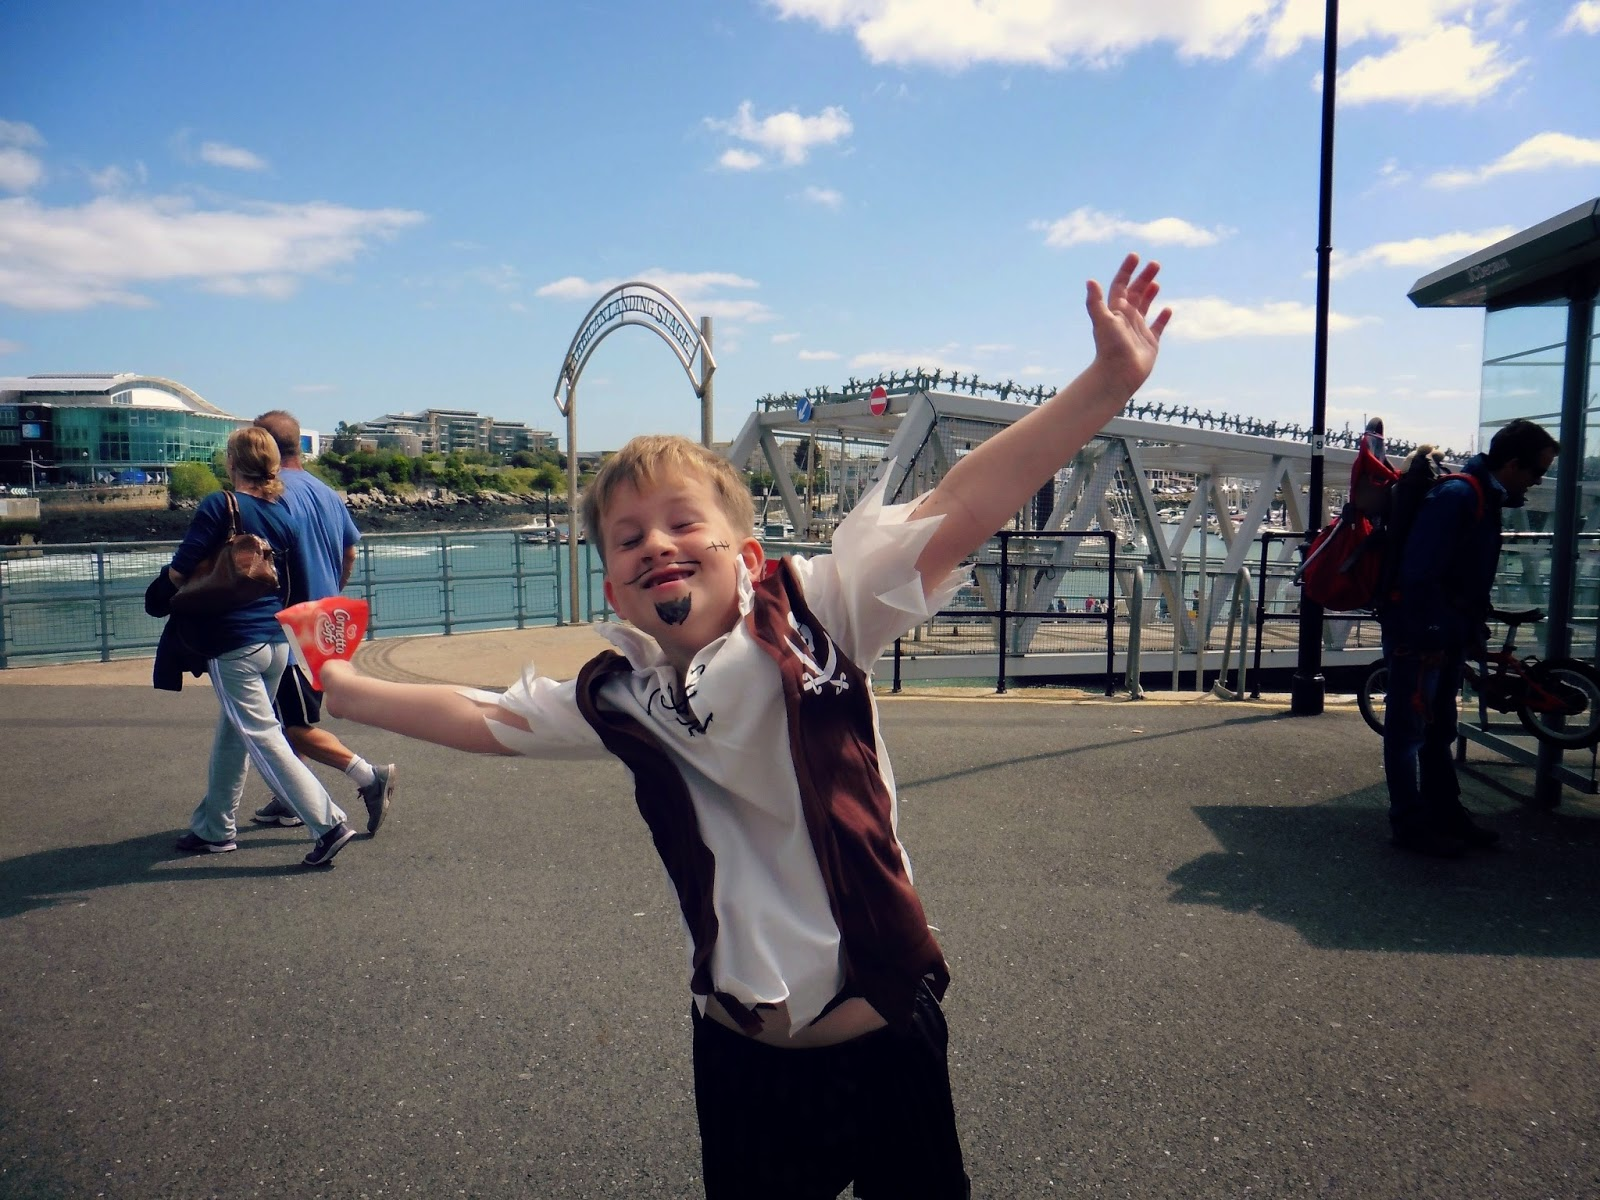 pirate, plymouth, barbican, weekend,